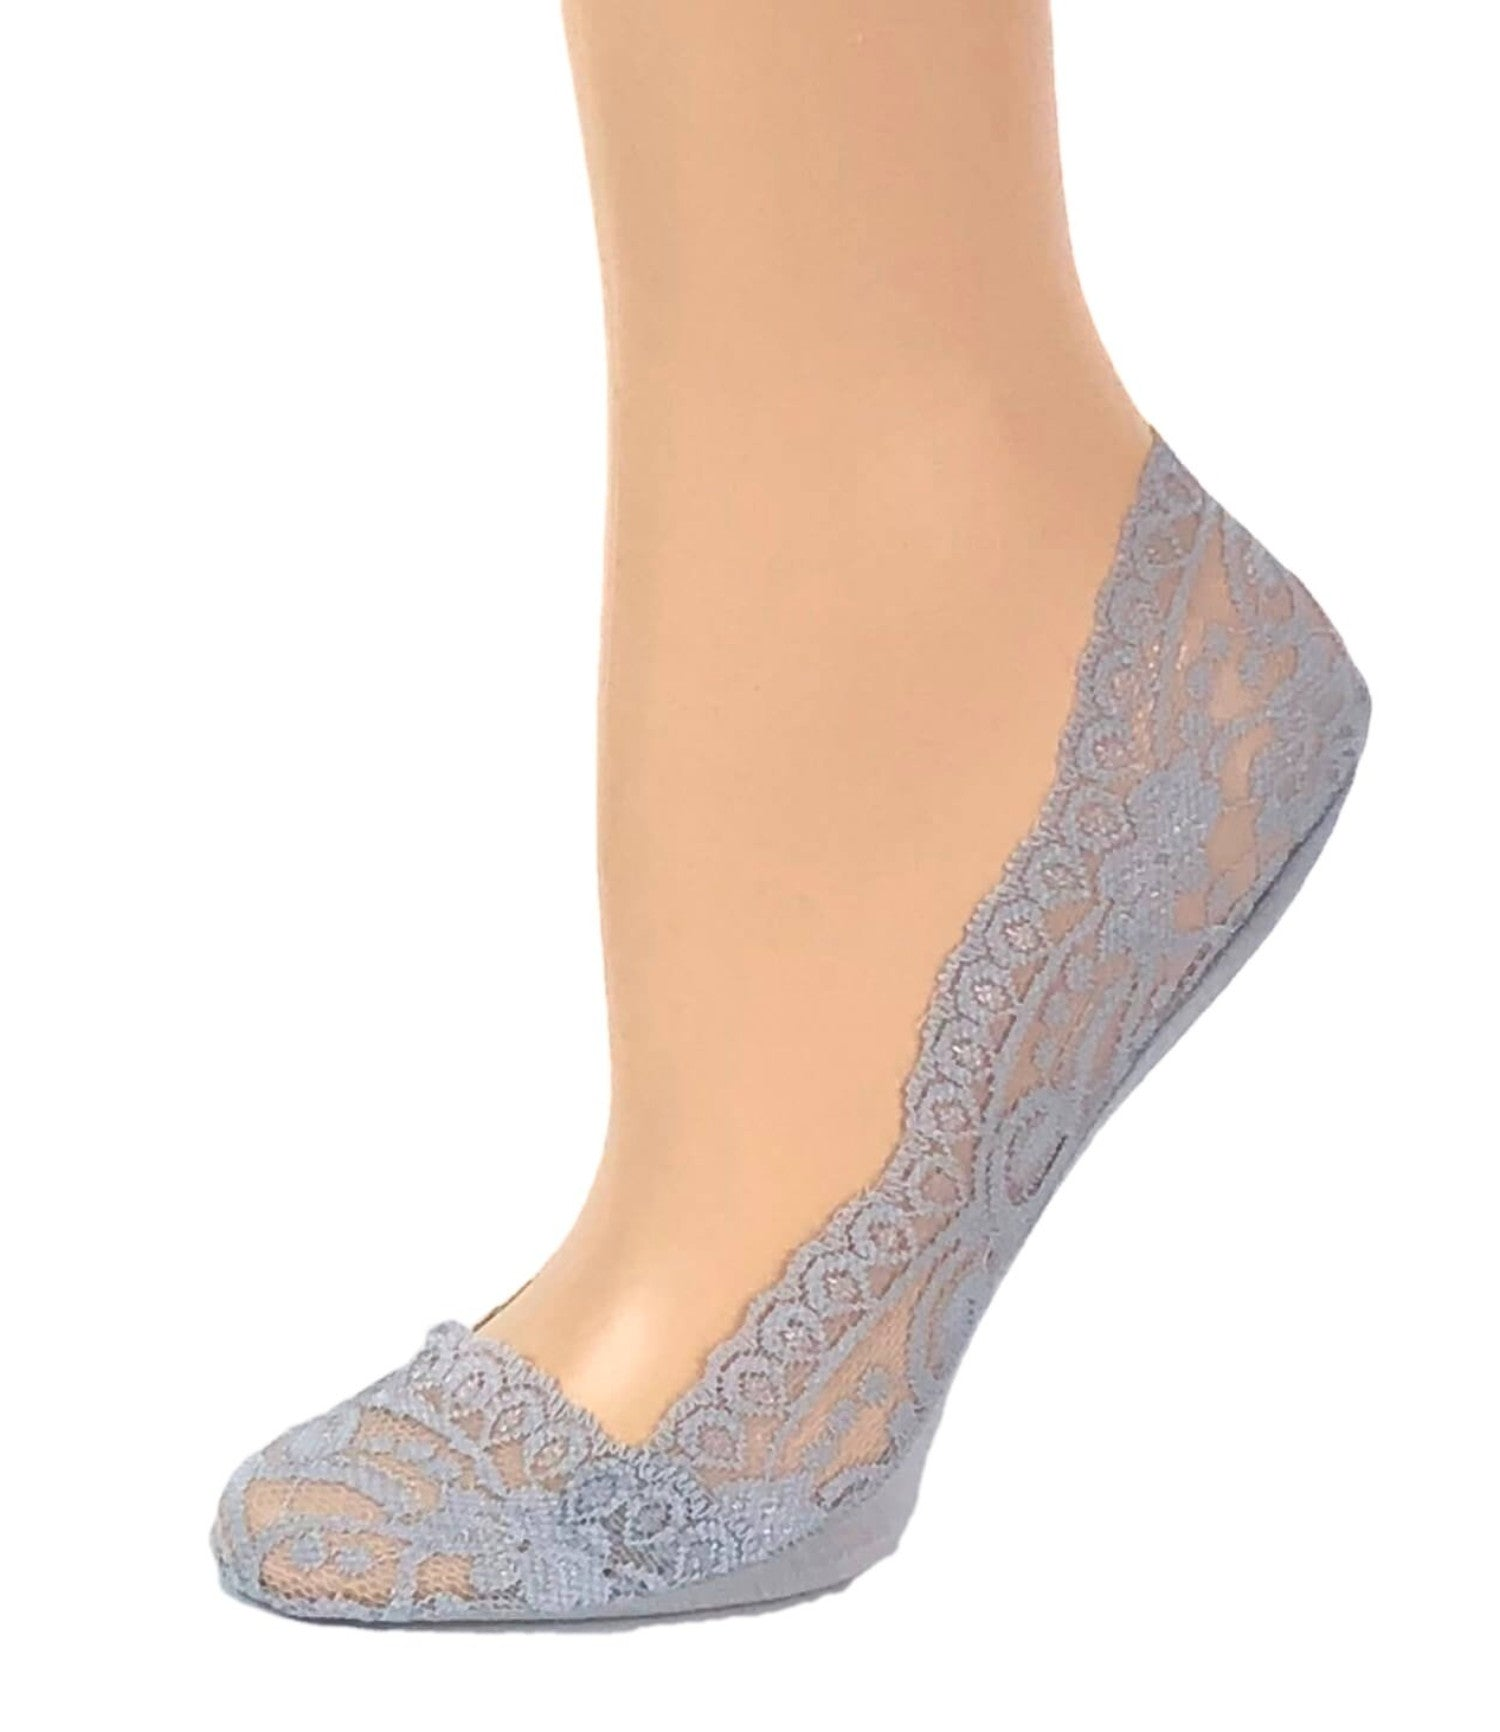 Gorgeous Grey Patterned Ankle Sheer Socks - Global Trendz Fashion®